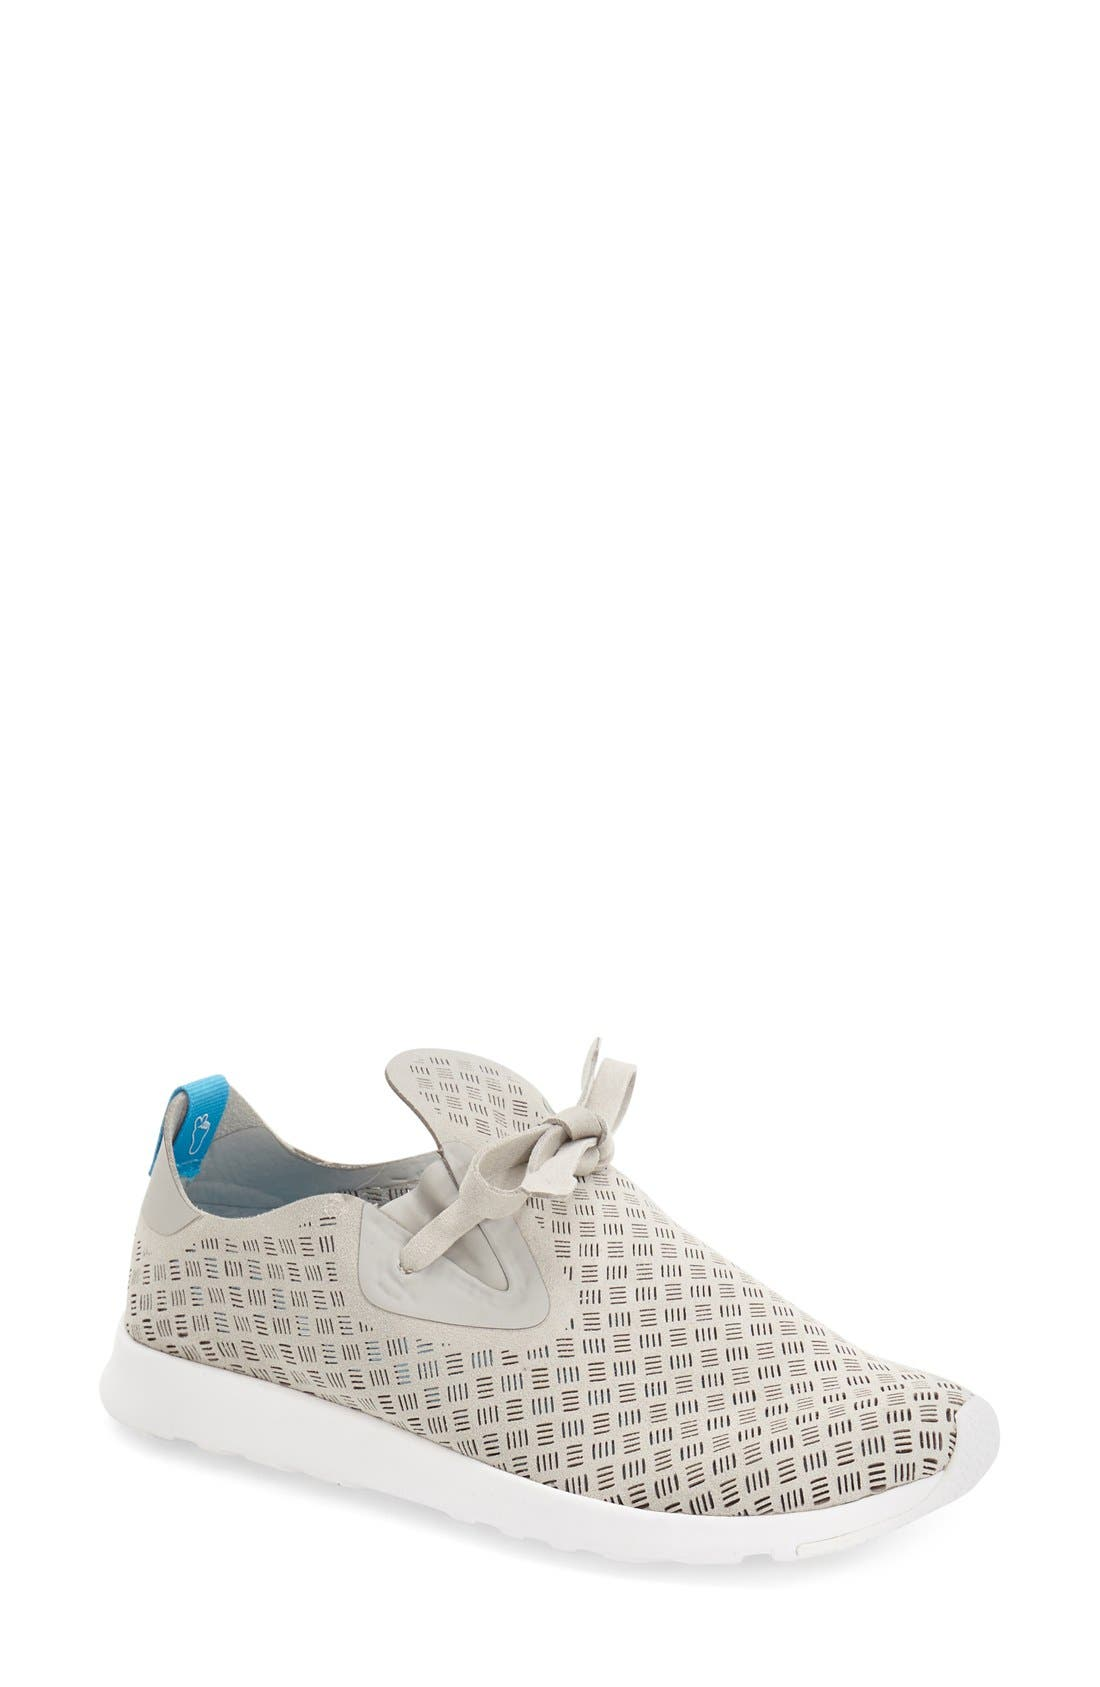 Main Image - Native Shoes 'Apollo Mox XL' Perforated Sneaker (Women)